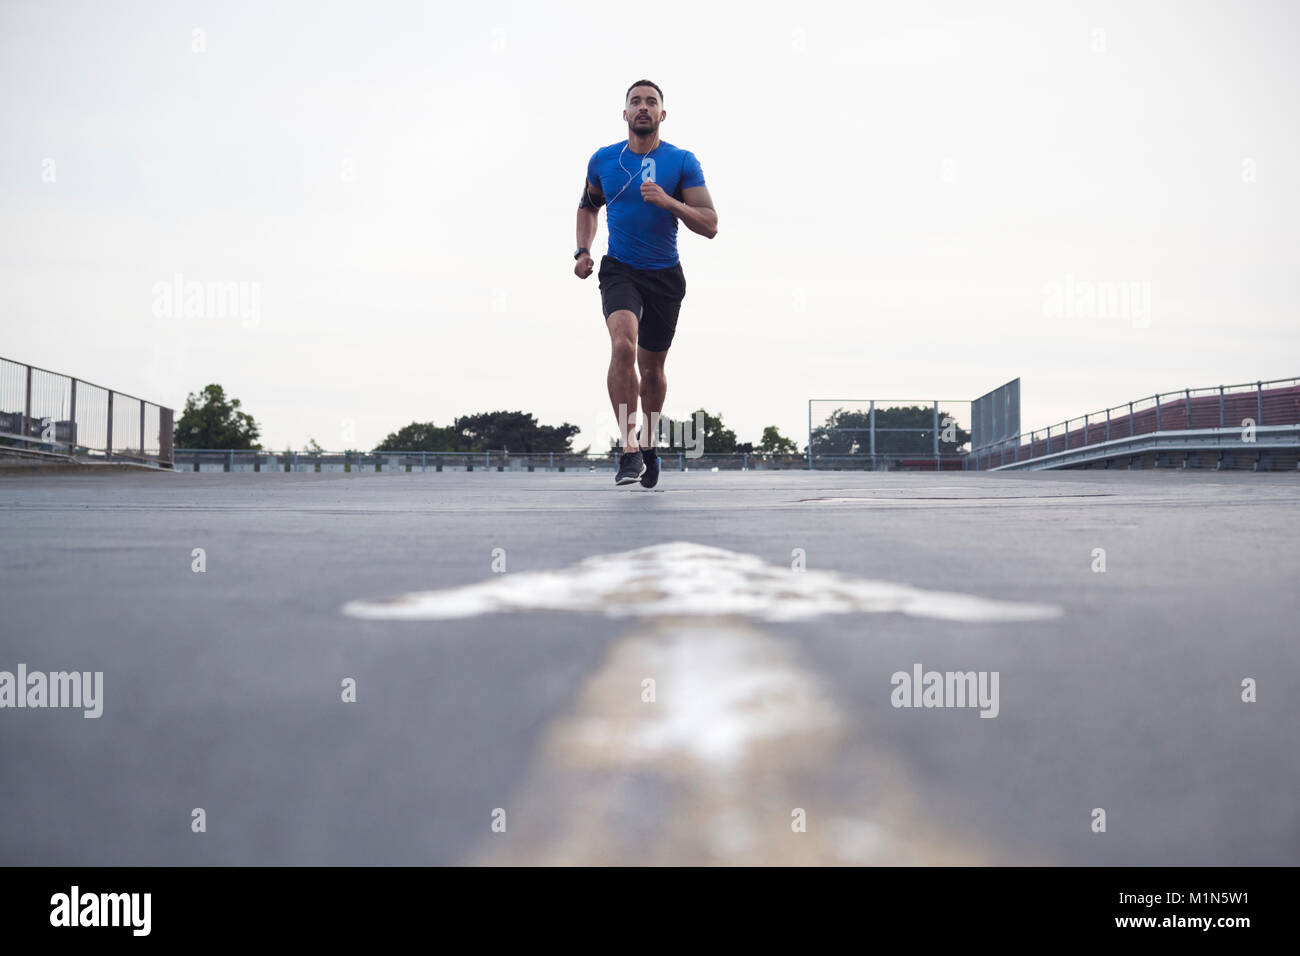 Male athlete running on a road towards camera, full length Stock Photo